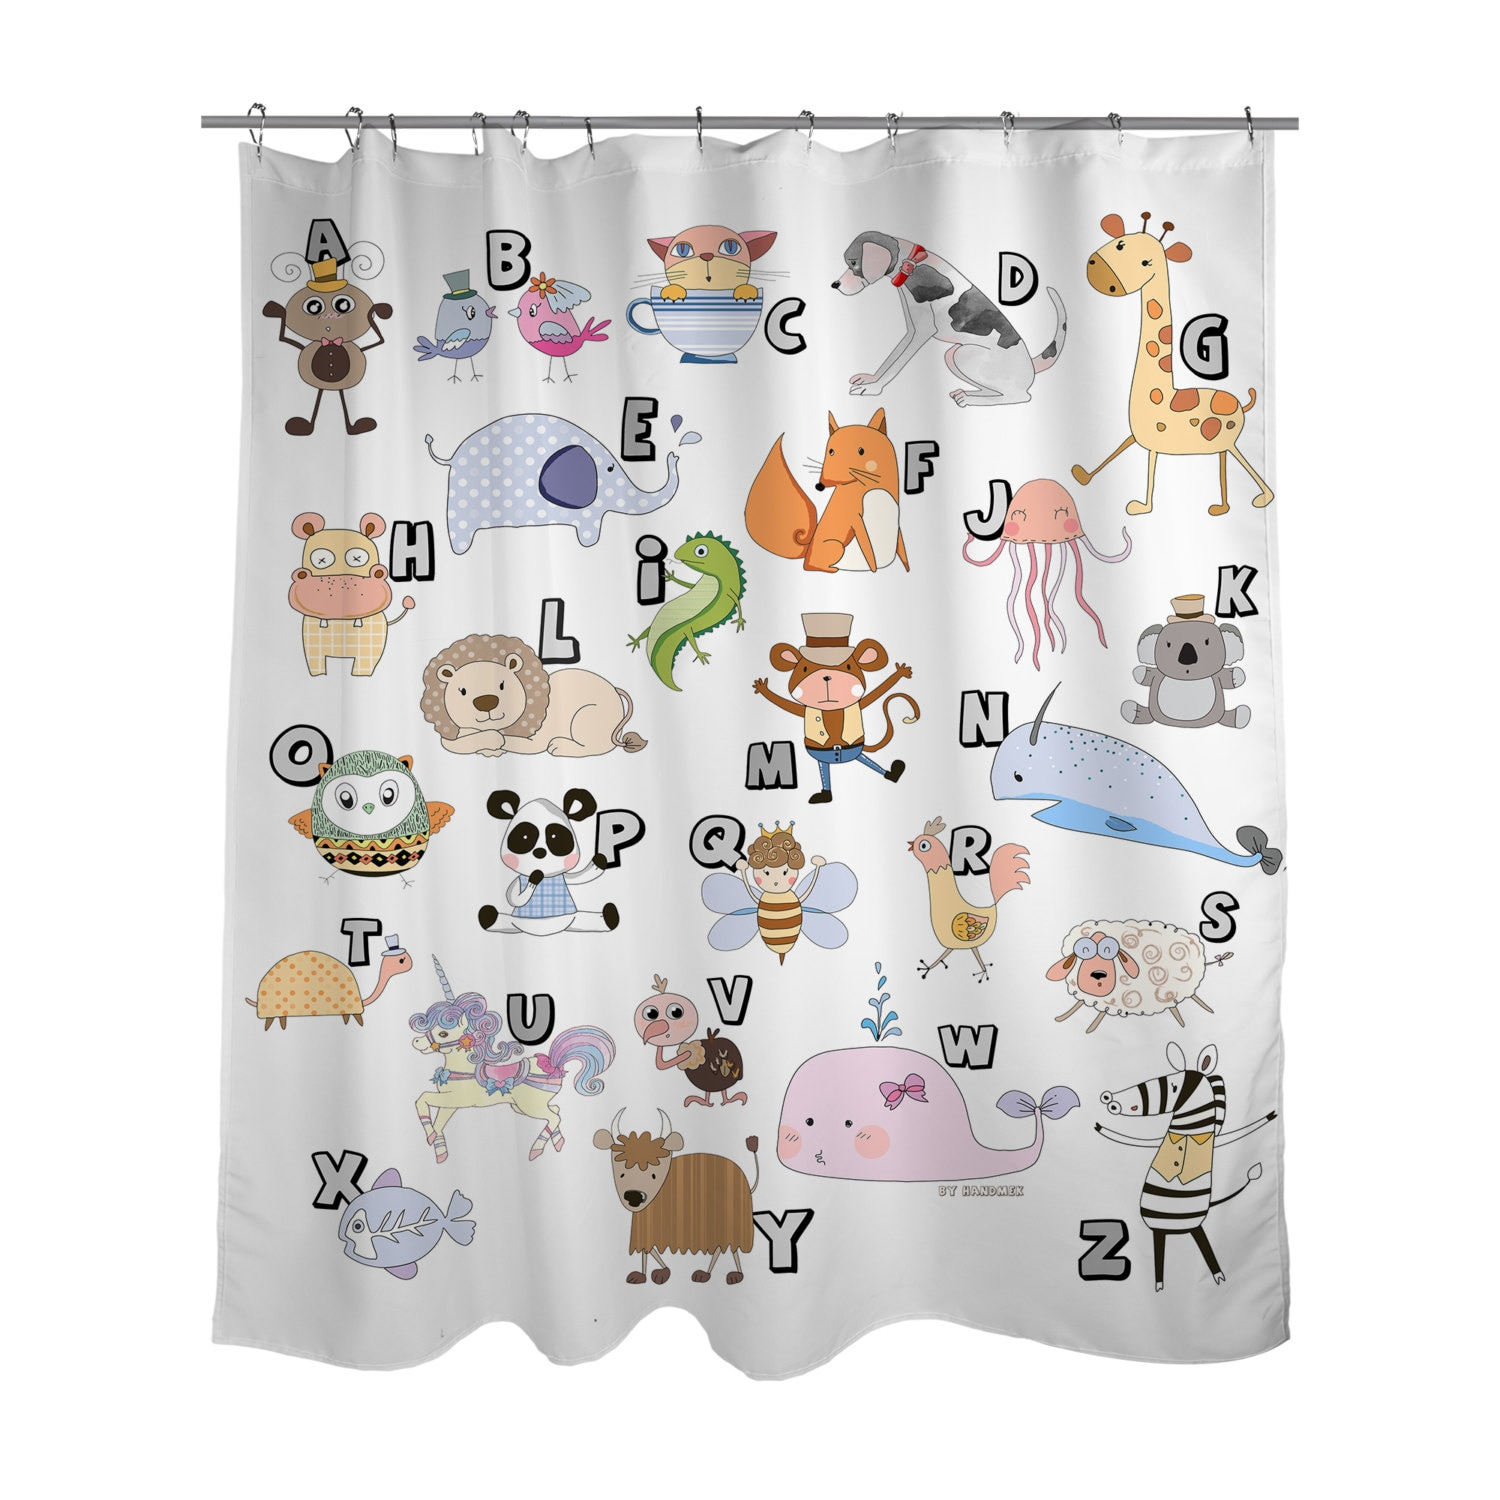 Animal Alphabet Shower Curtain KIDS Bath Curtain